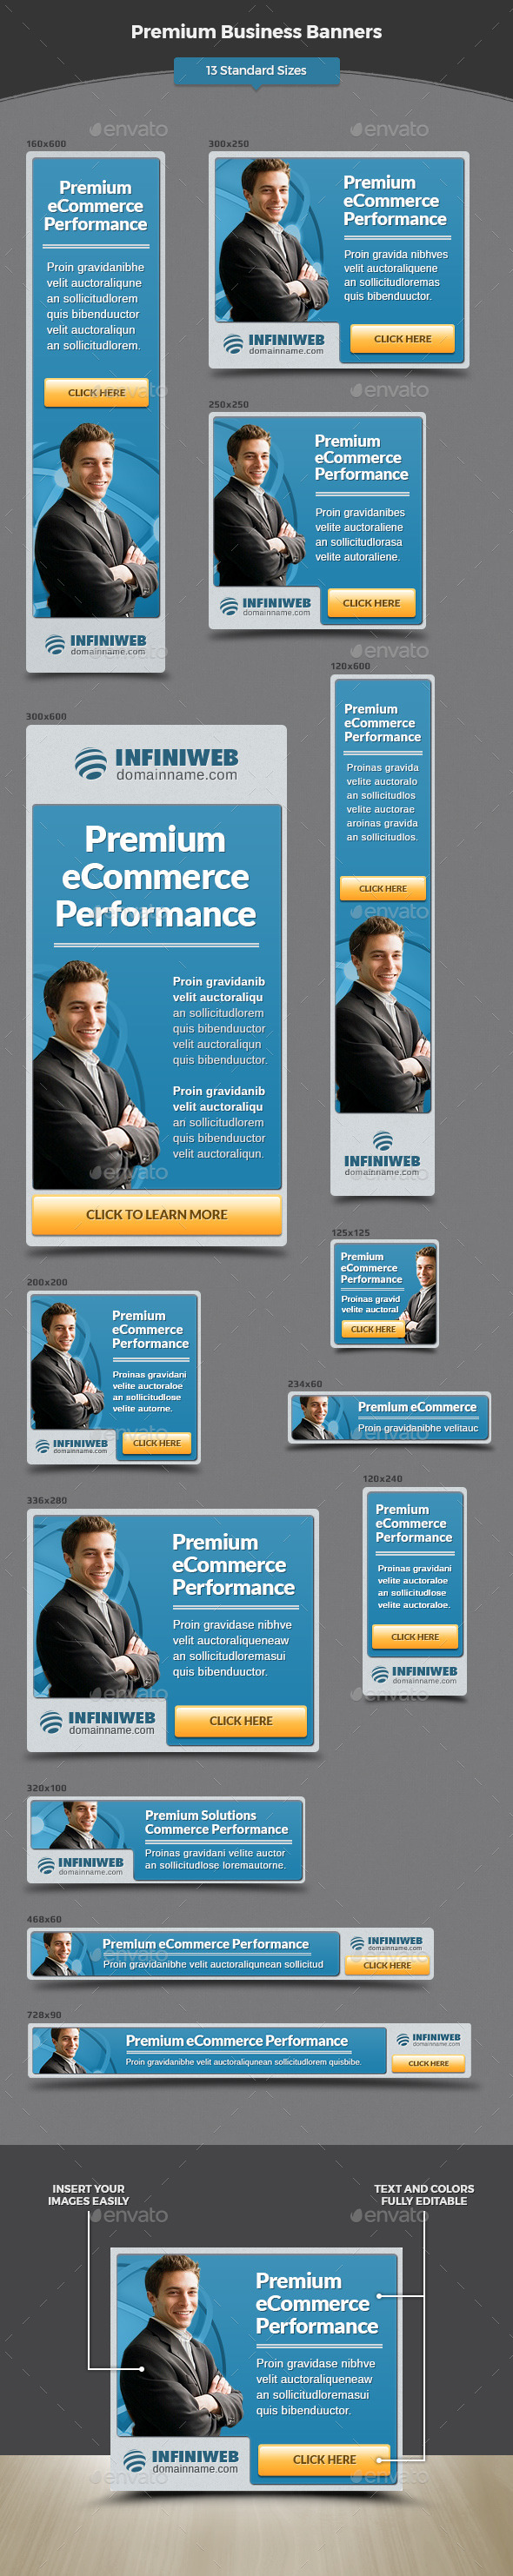 Premium Business Banners - Banners & Ads Web Elements